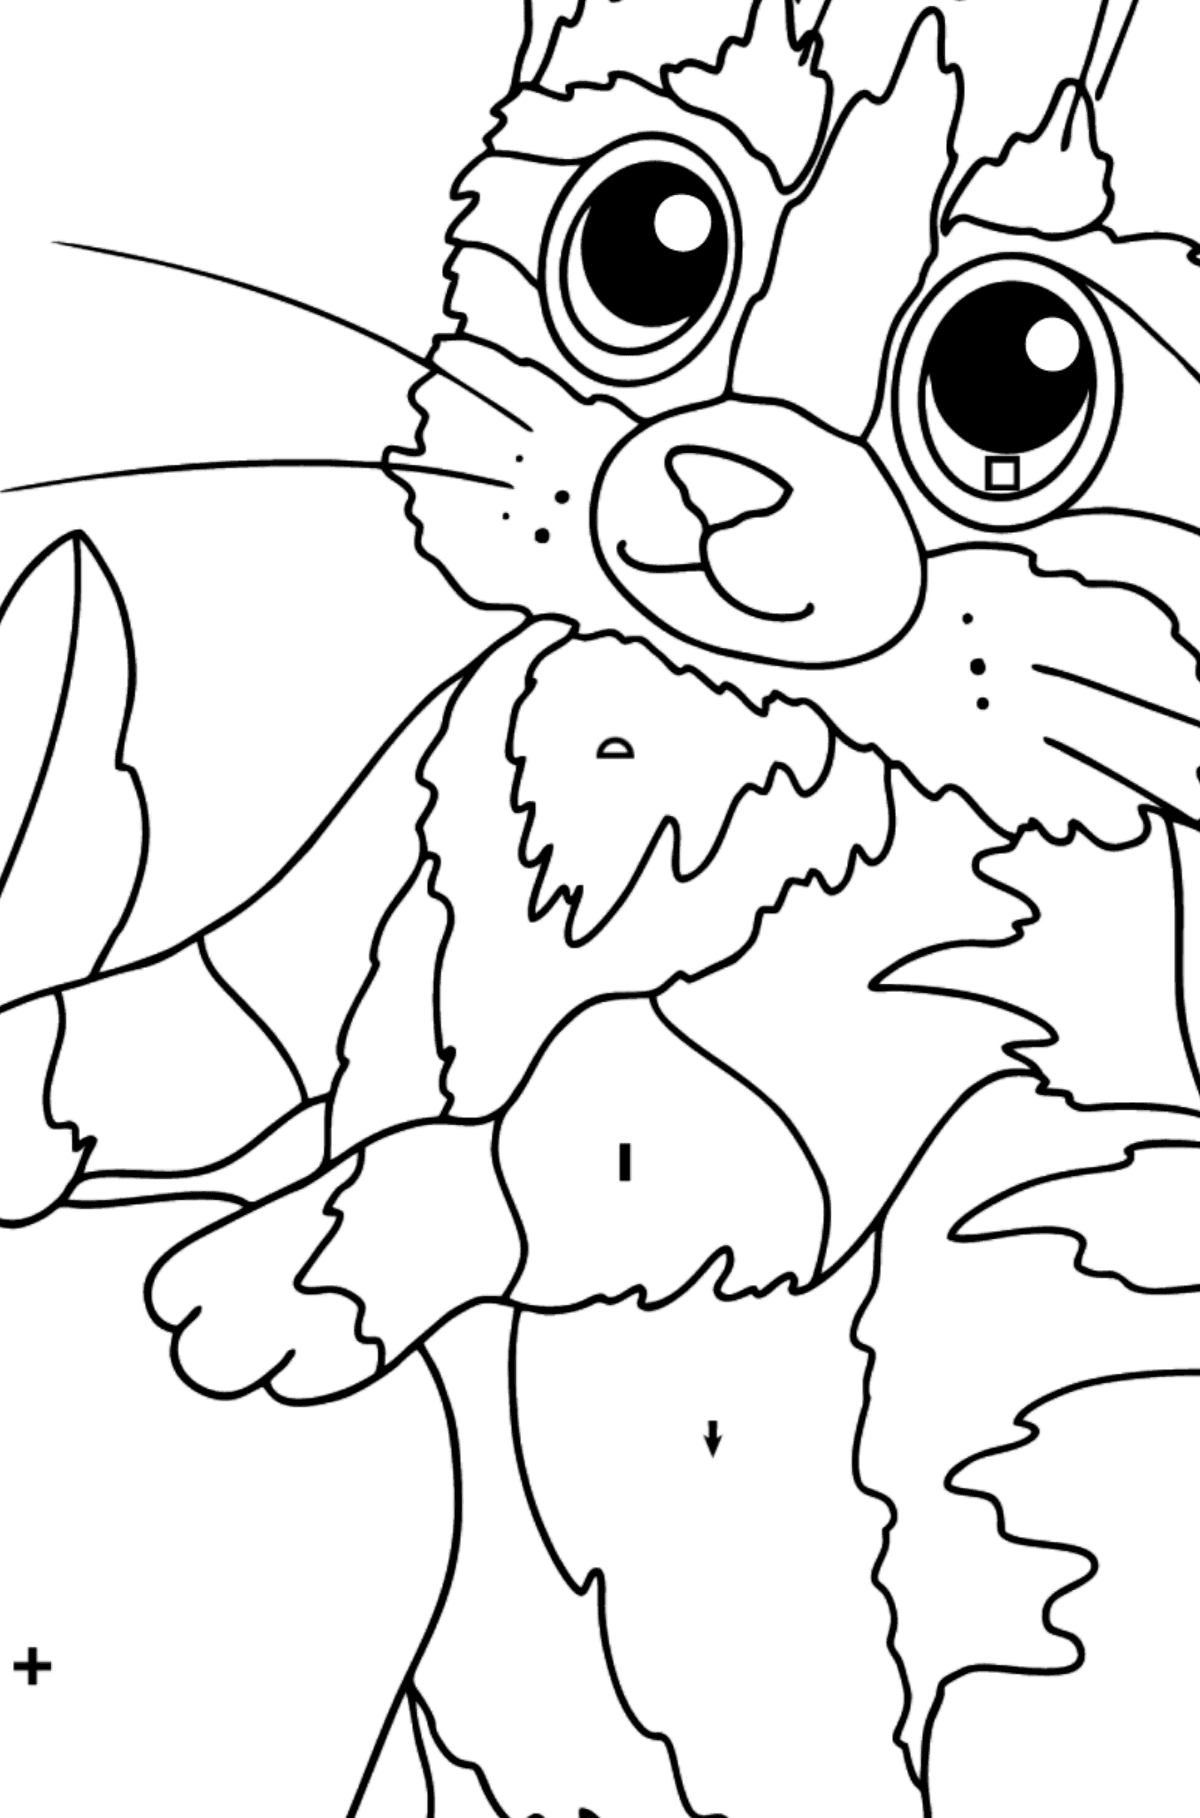 A Kitten is Playing with an Apple - Stampy cat coloring page - Coloring by Symbols and Geometric Shapes for Kids